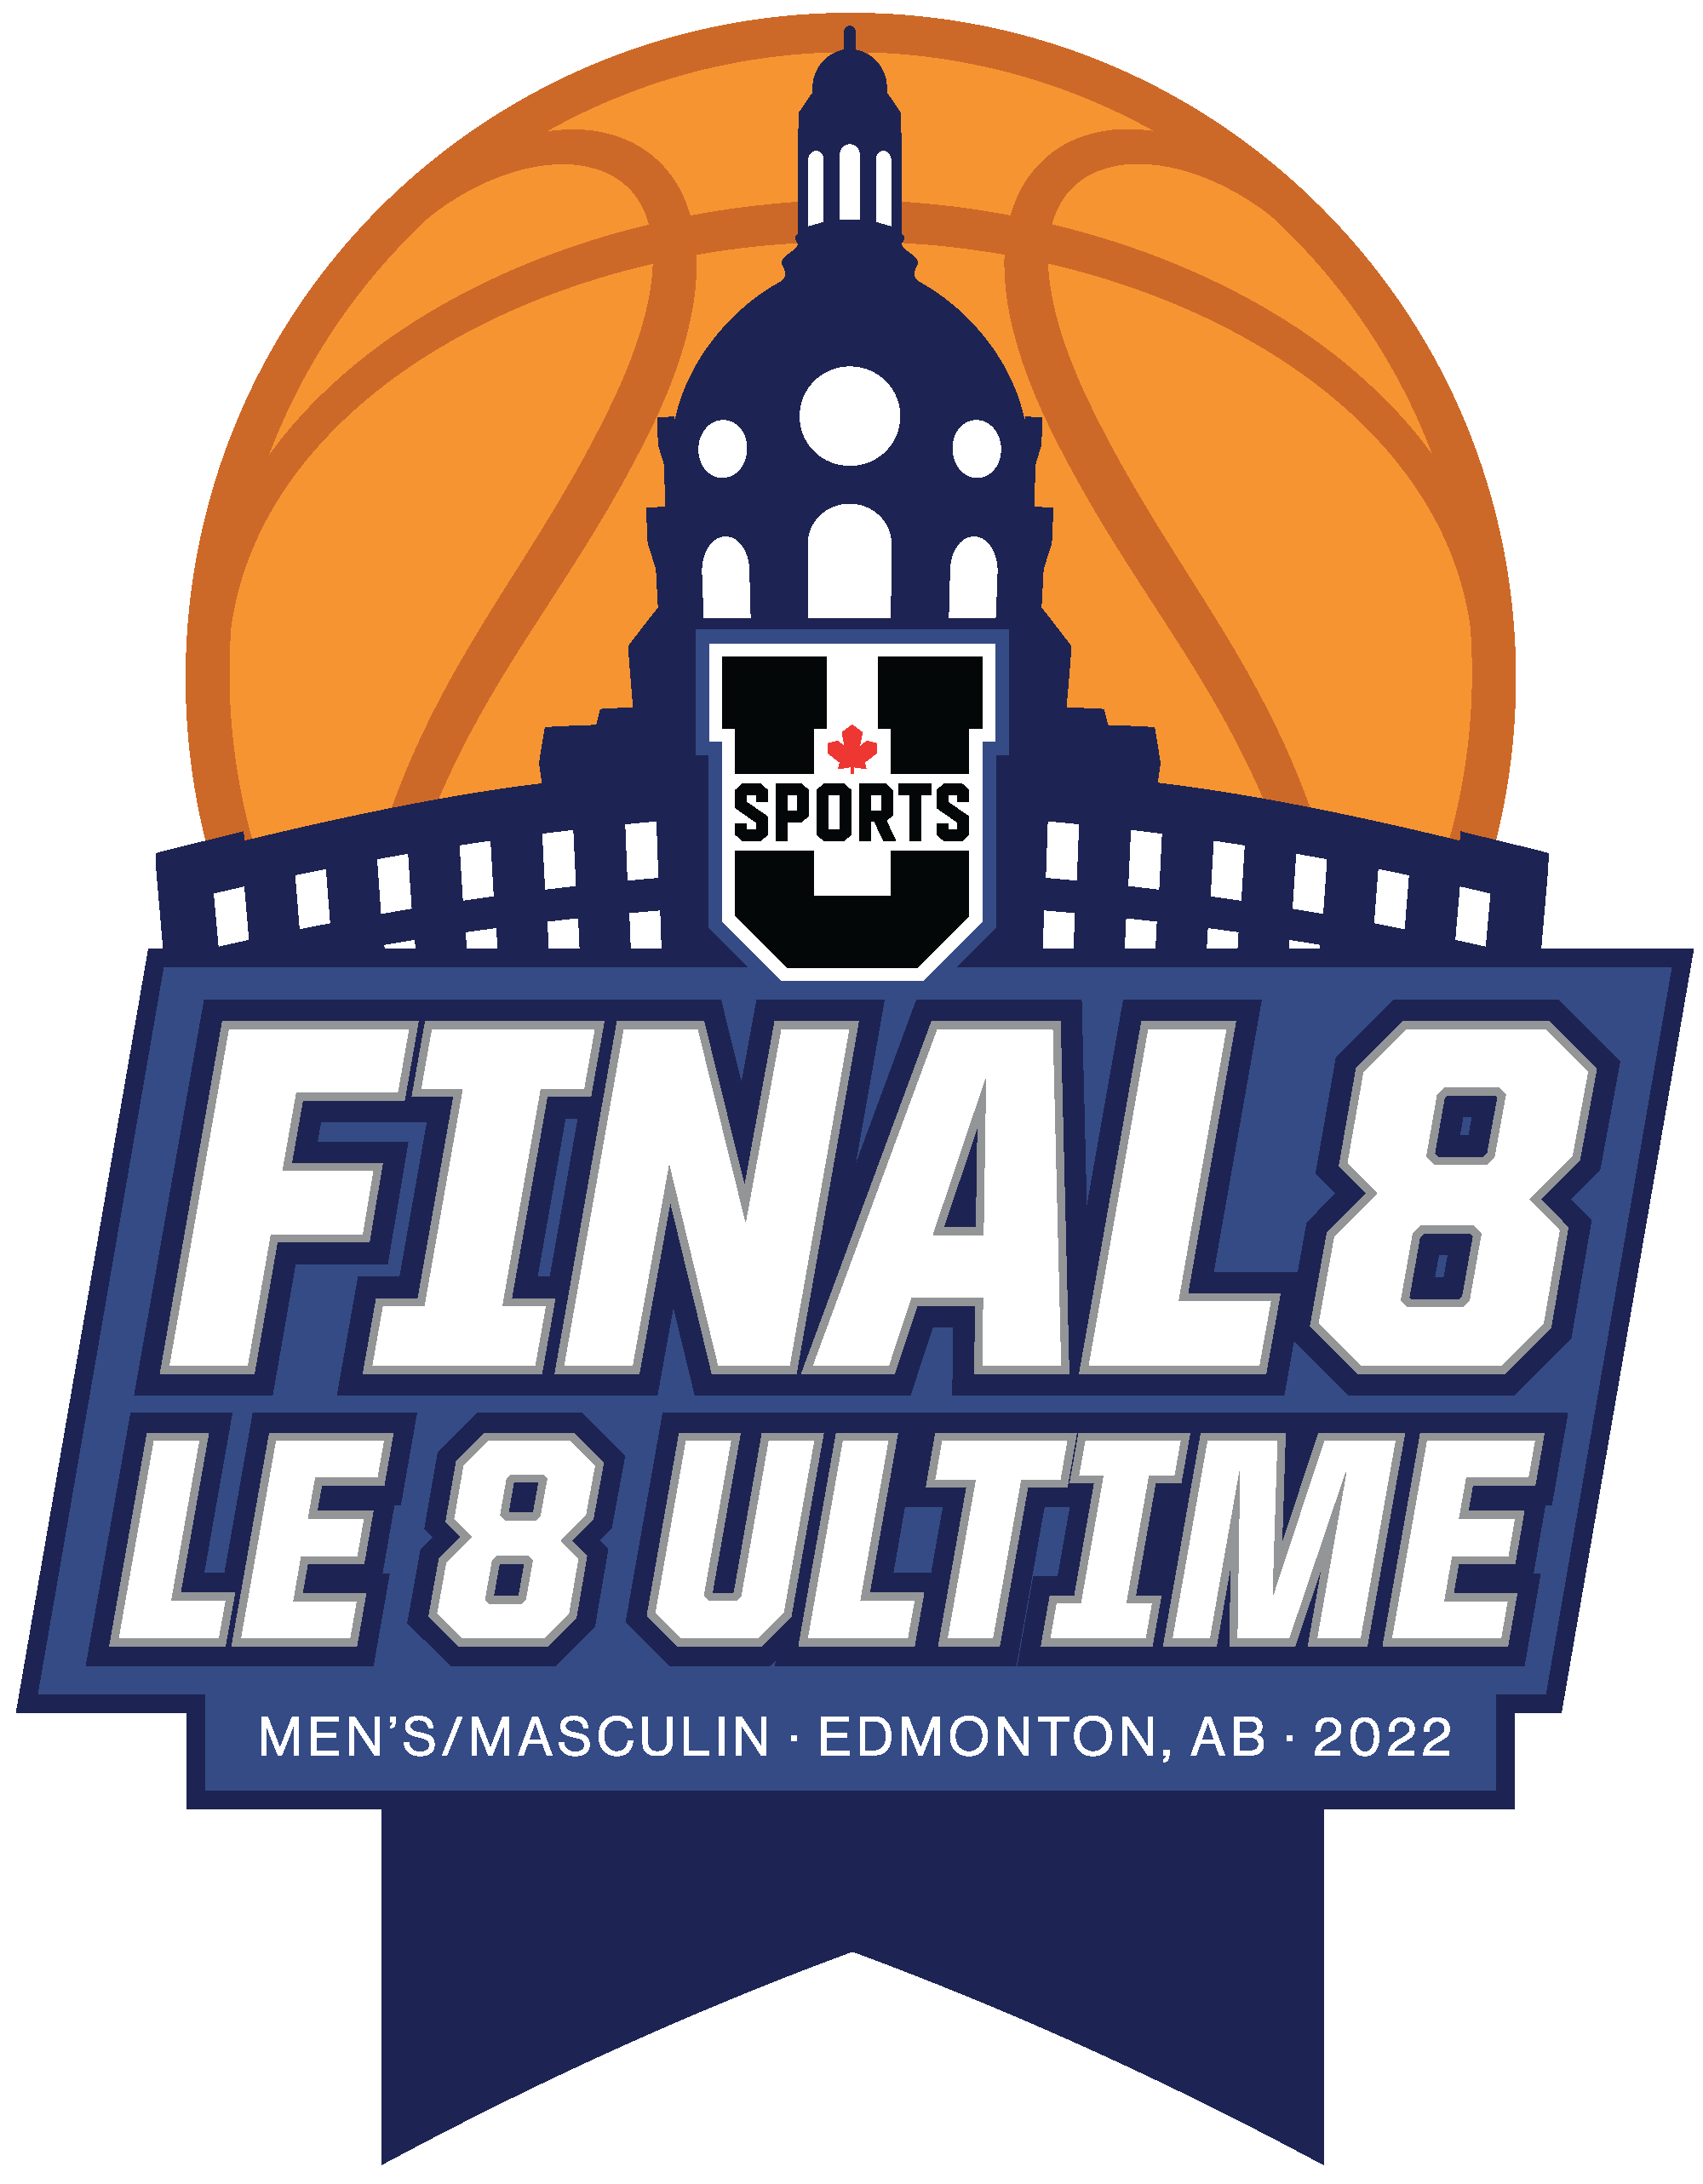 USports_Champs2122_Basketball_M_Primary_BL.png (72 KB)